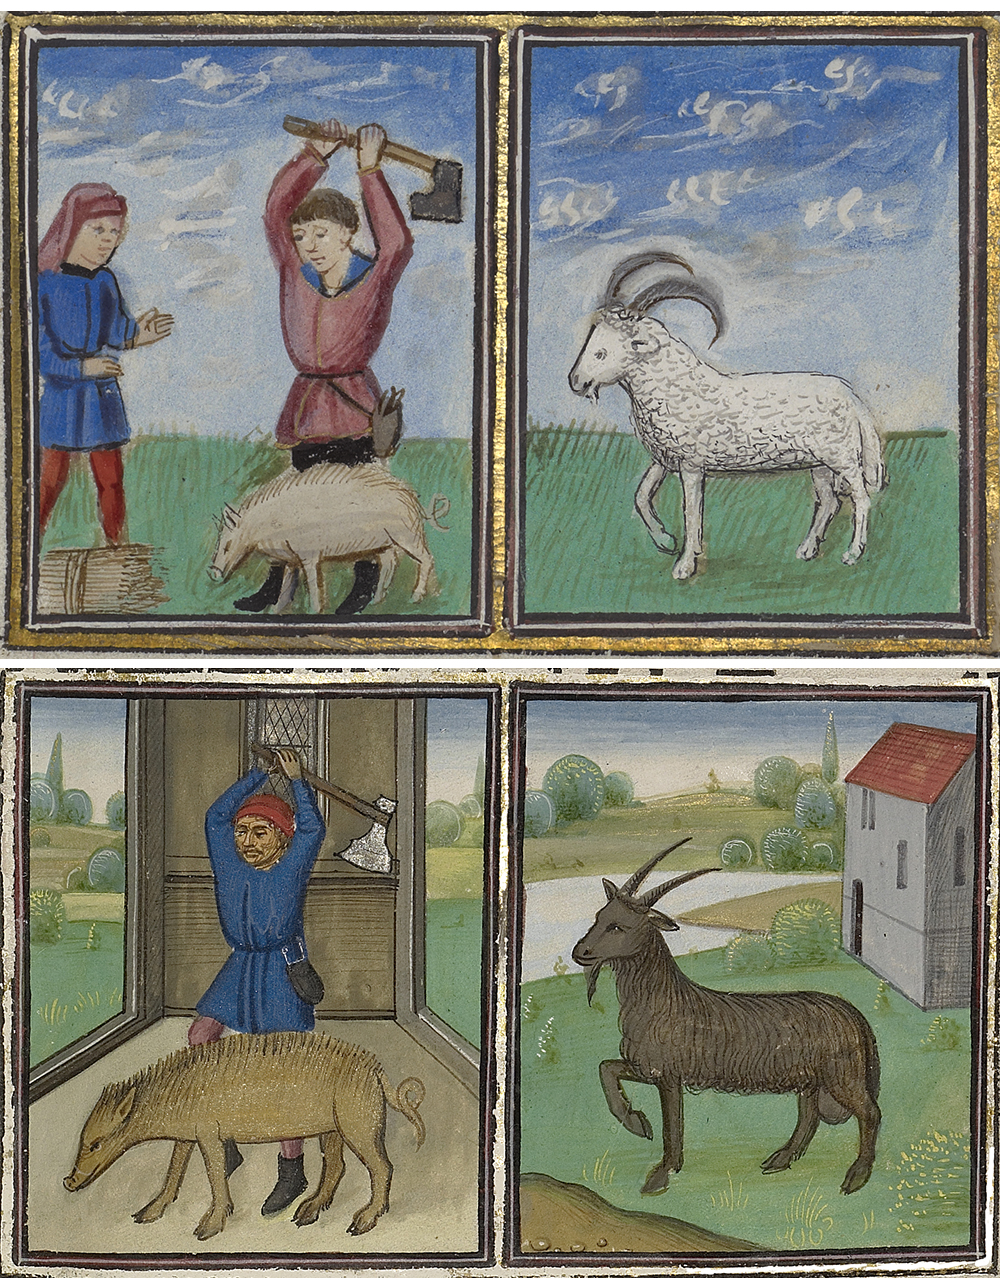 Calendar pages for December, by Master of the Lee Hours and the Workshop of Willem Vrelant, fifteenth century.